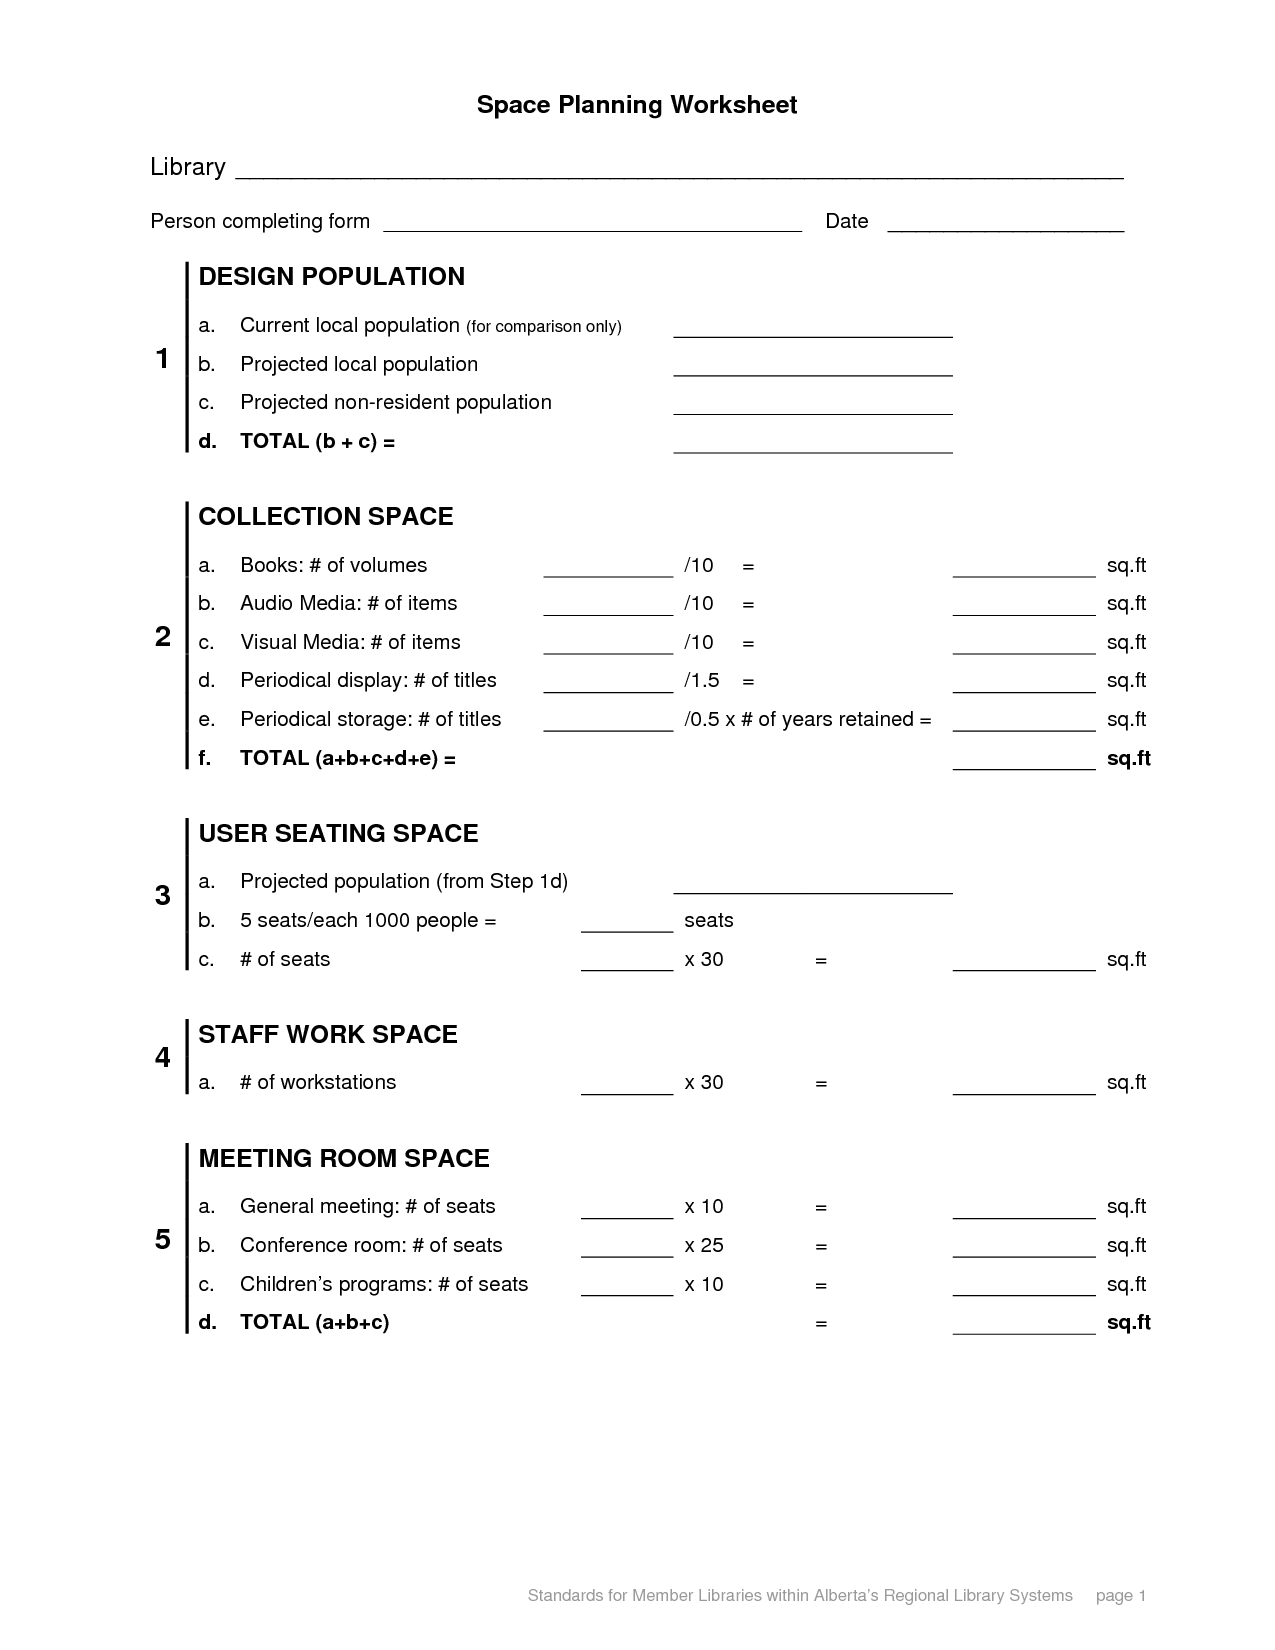 Personal Space Worksheet Invading Personal Space Quotes